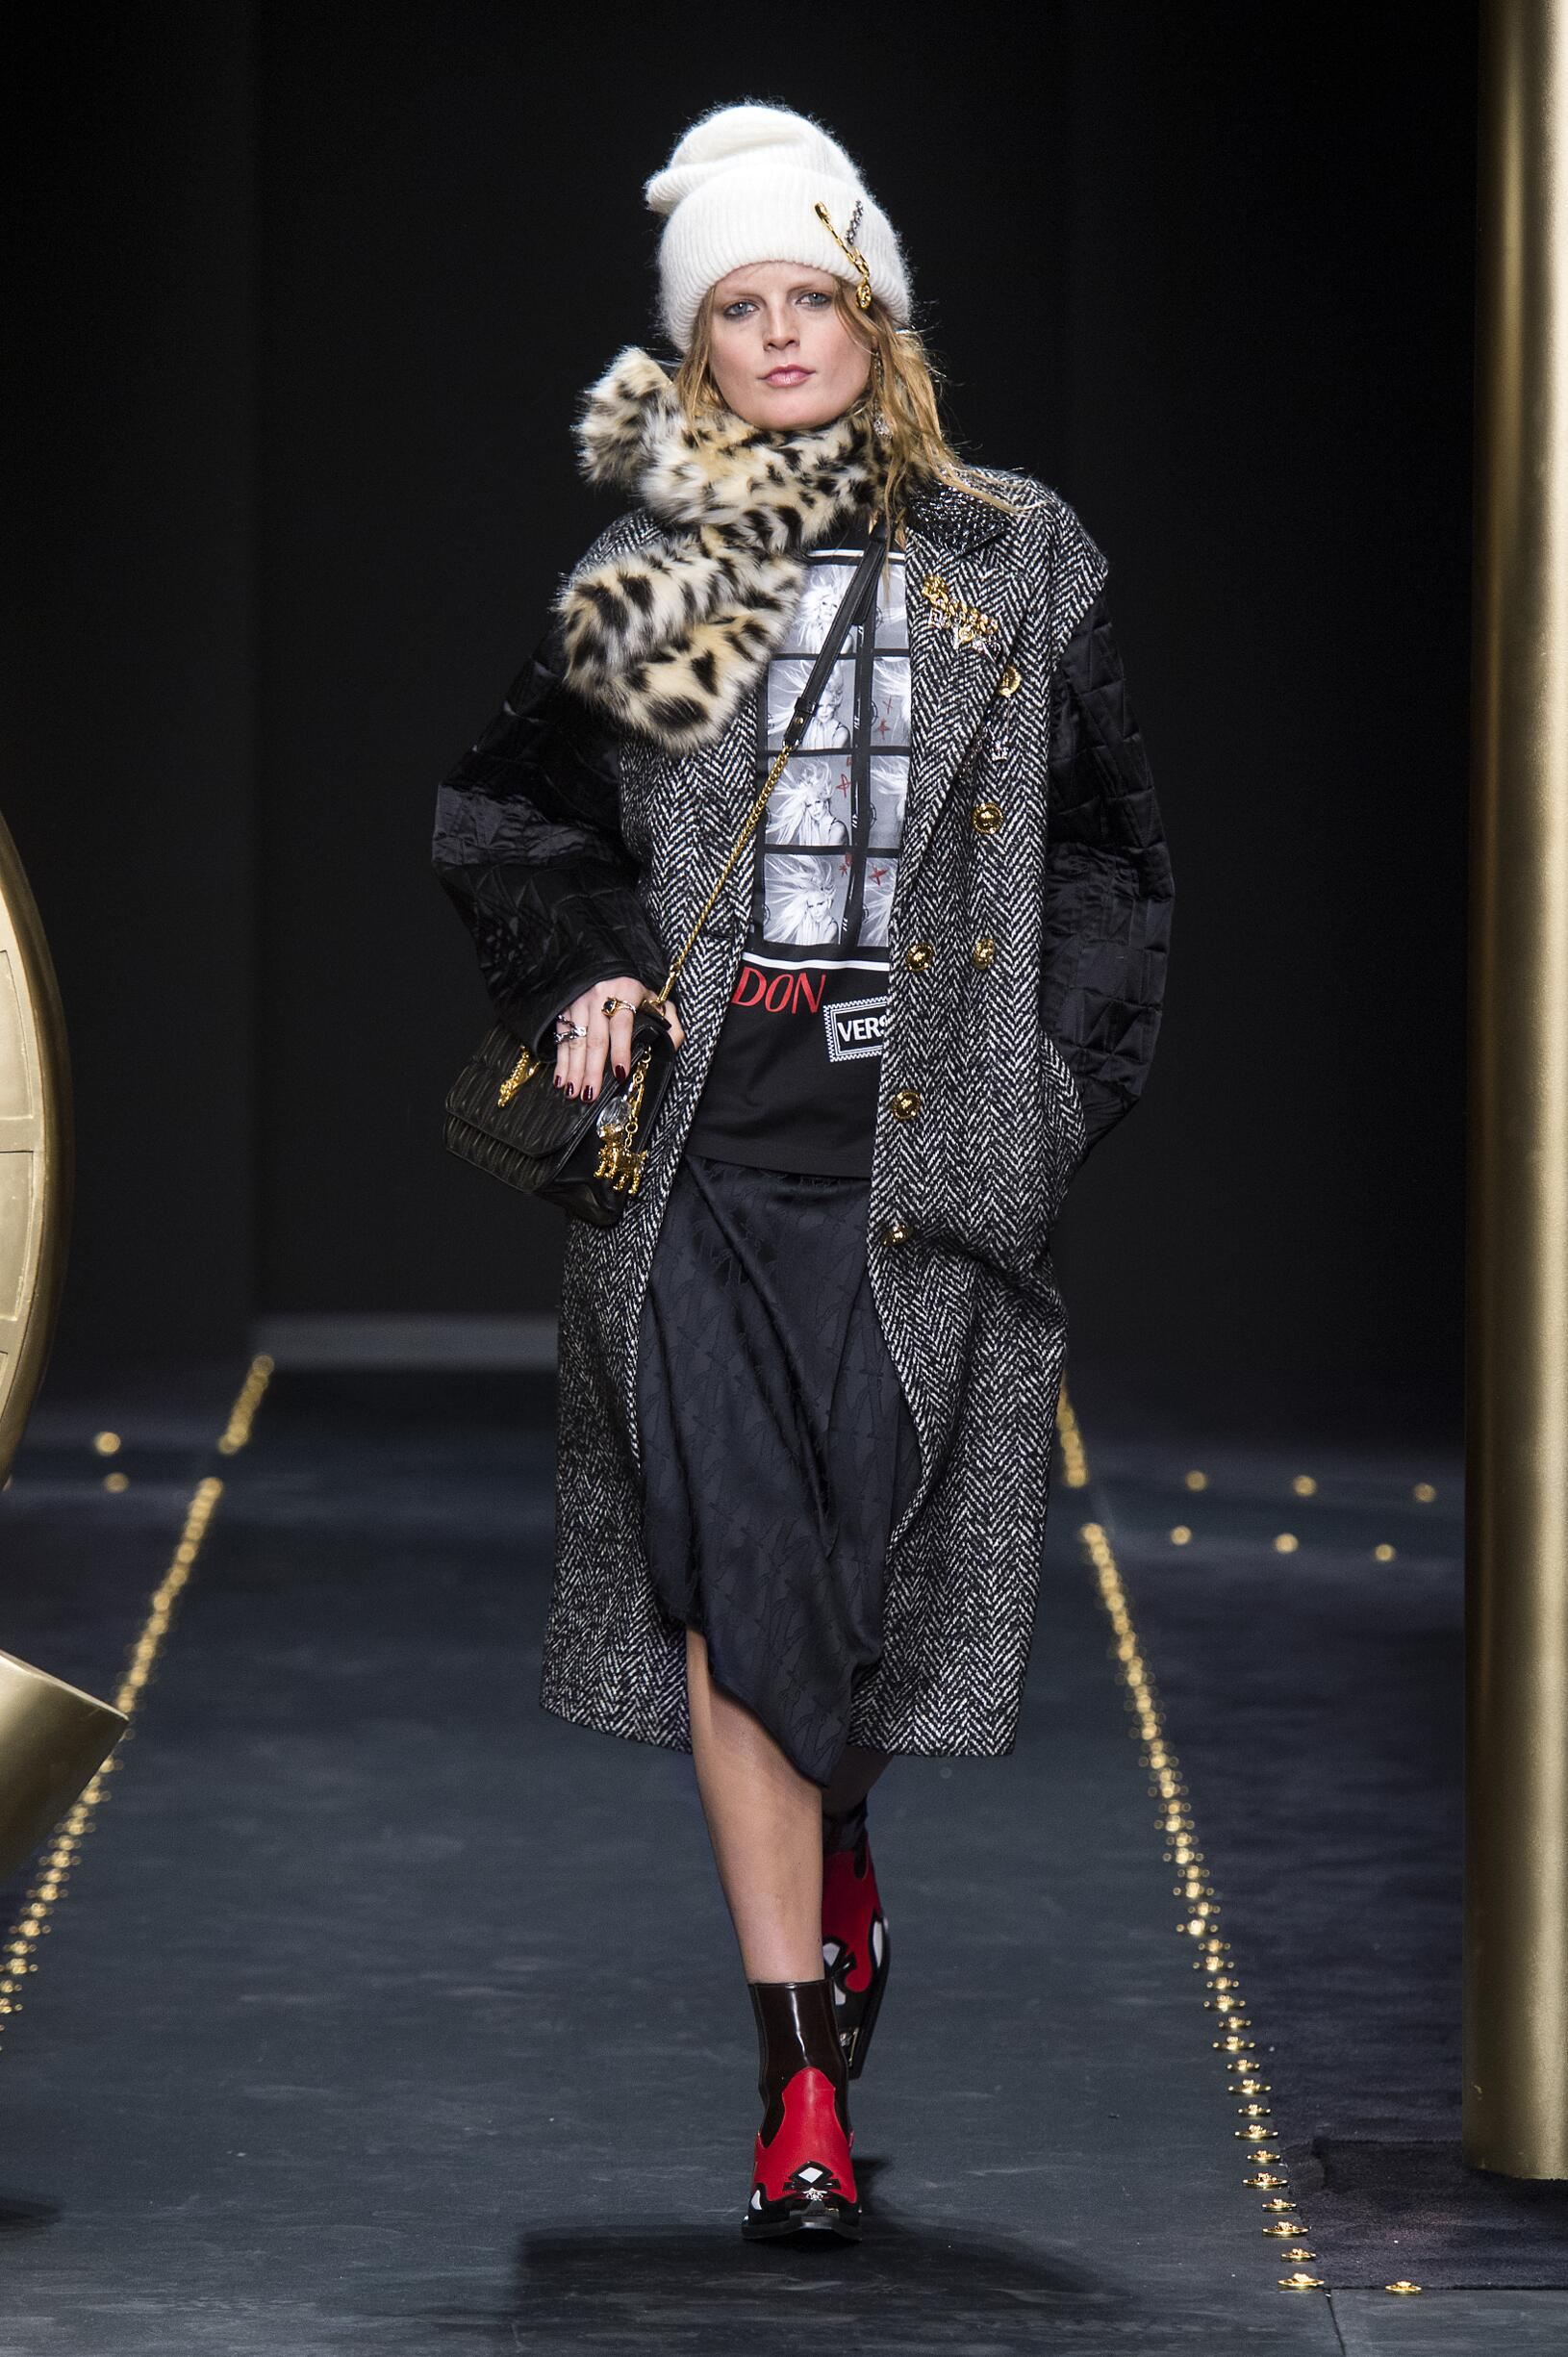 58ec3ffd3c6 Versace Milan Fashion Week Womenswear Trends